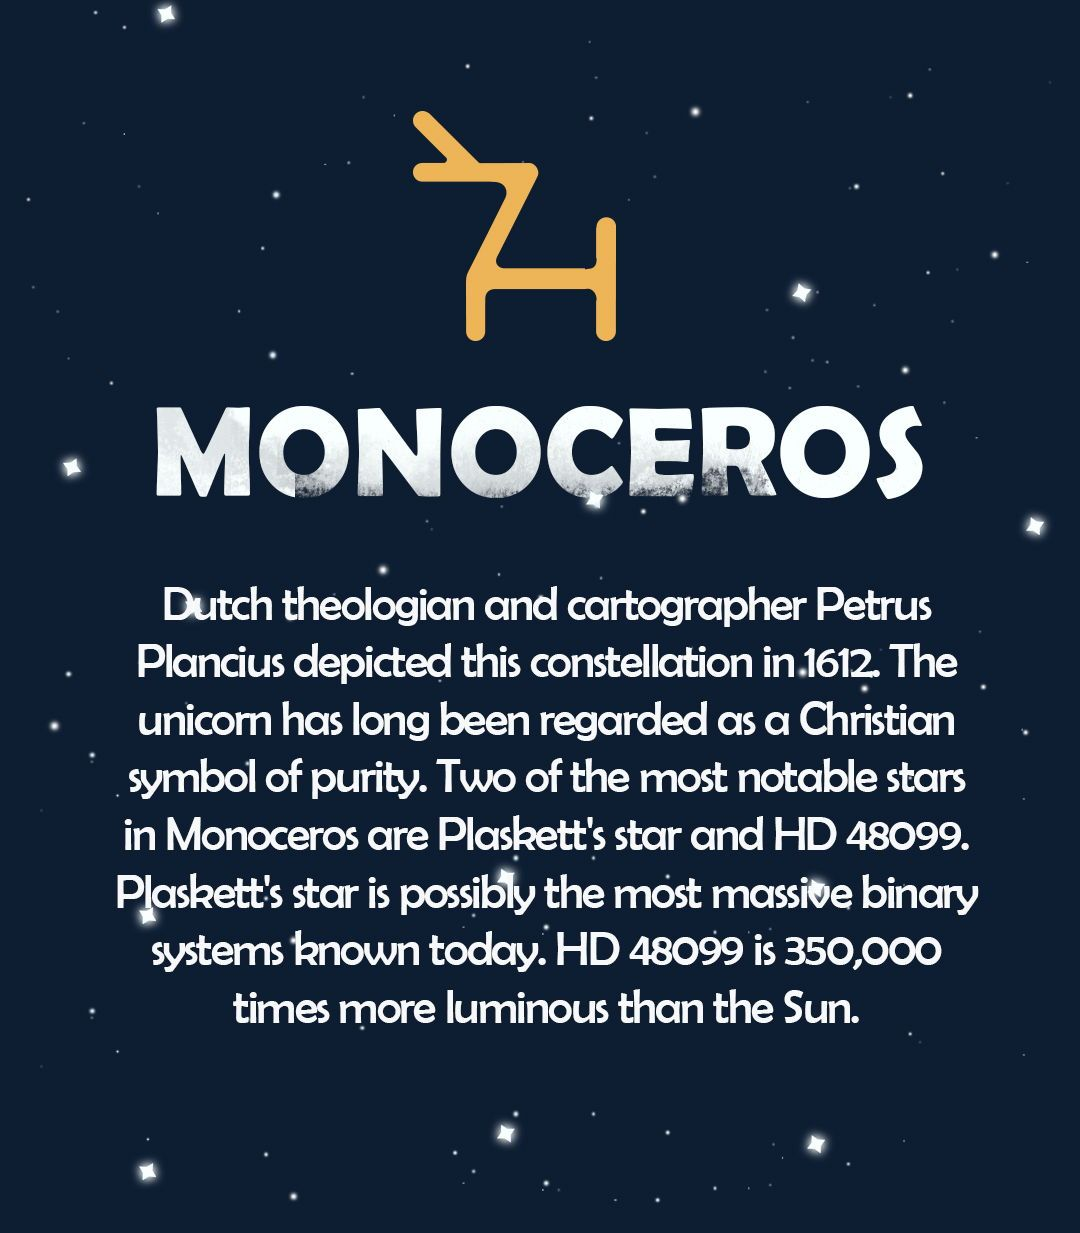 Monoceros Constellation Gift? Name a Star in Monoceros ...